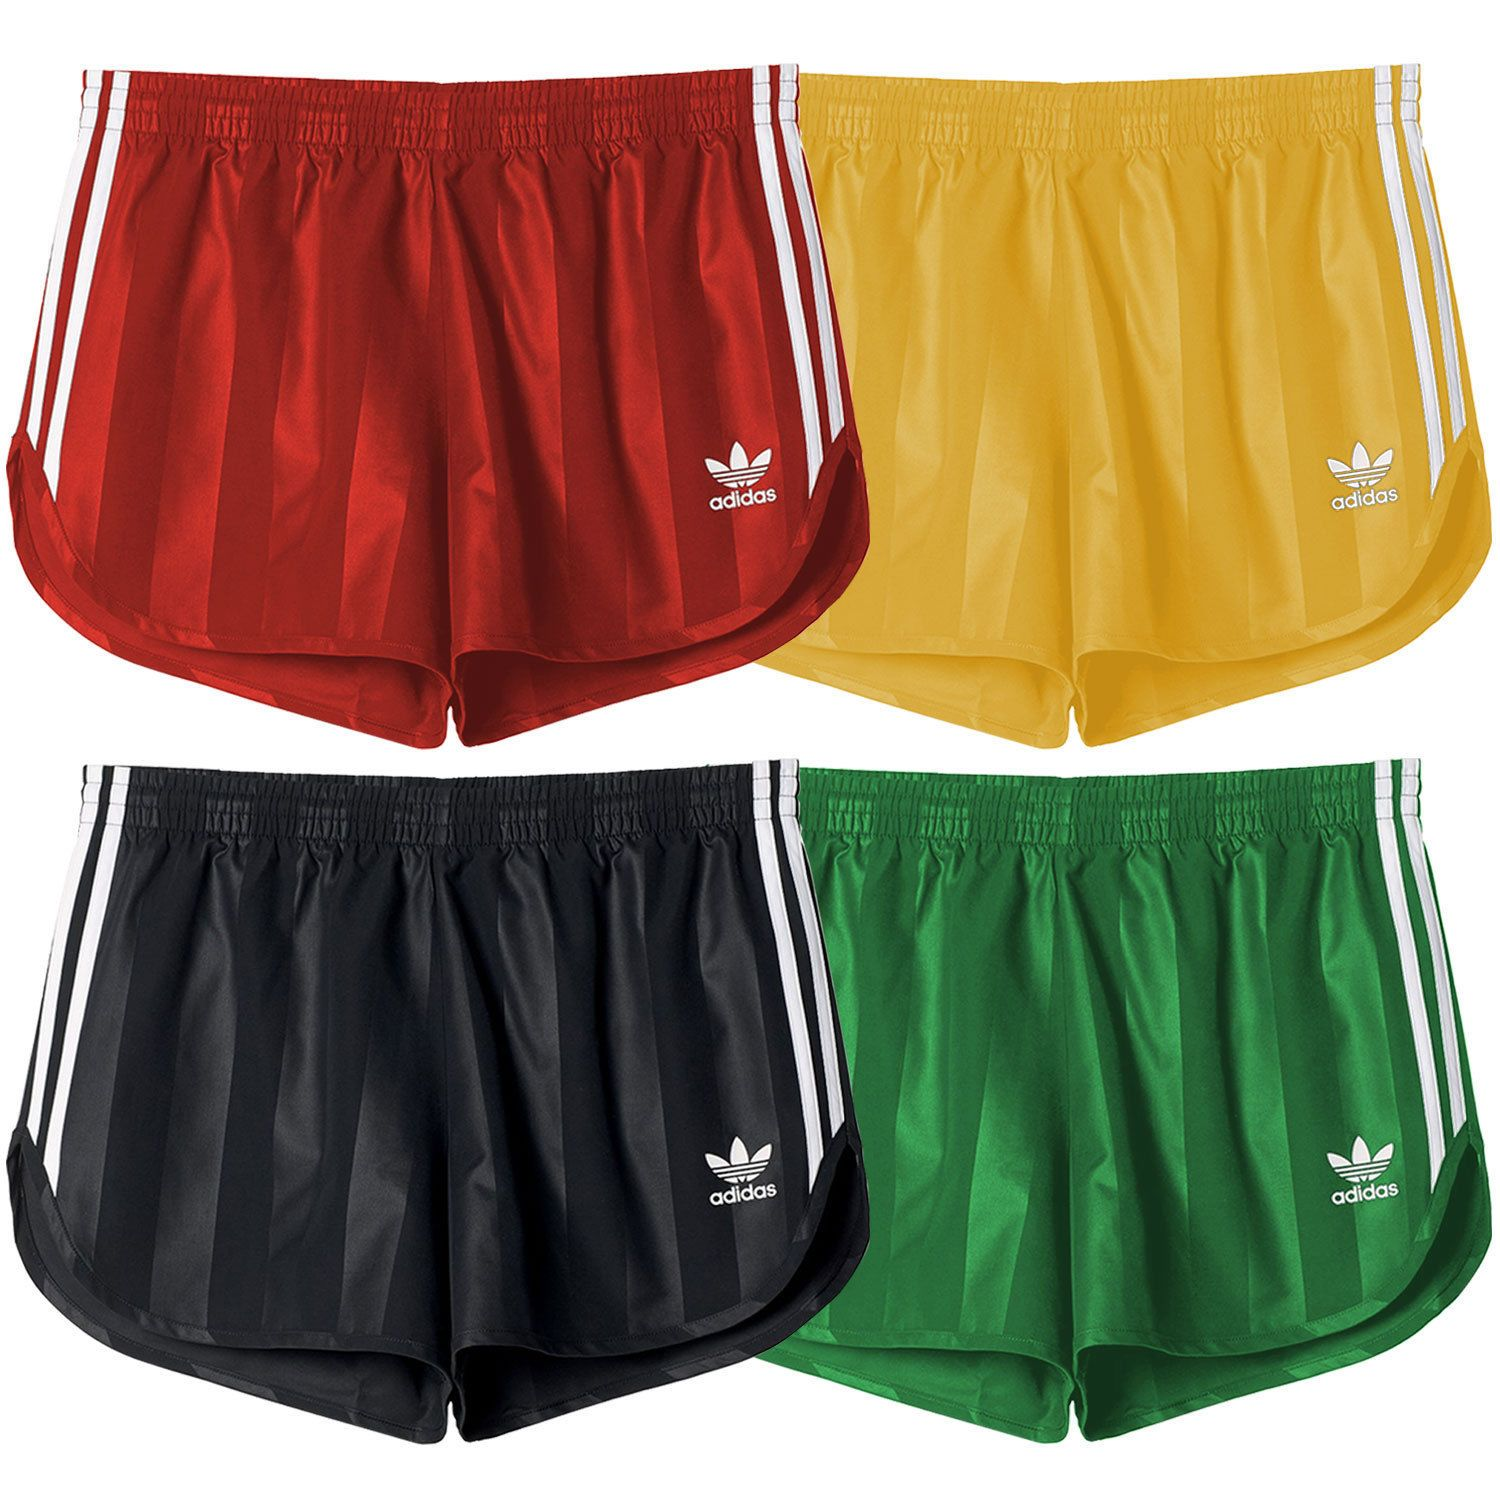 5301673d23 Adidas Originals Men's Retro Trefoil Vintage Inspired Polyester Football  Shorts